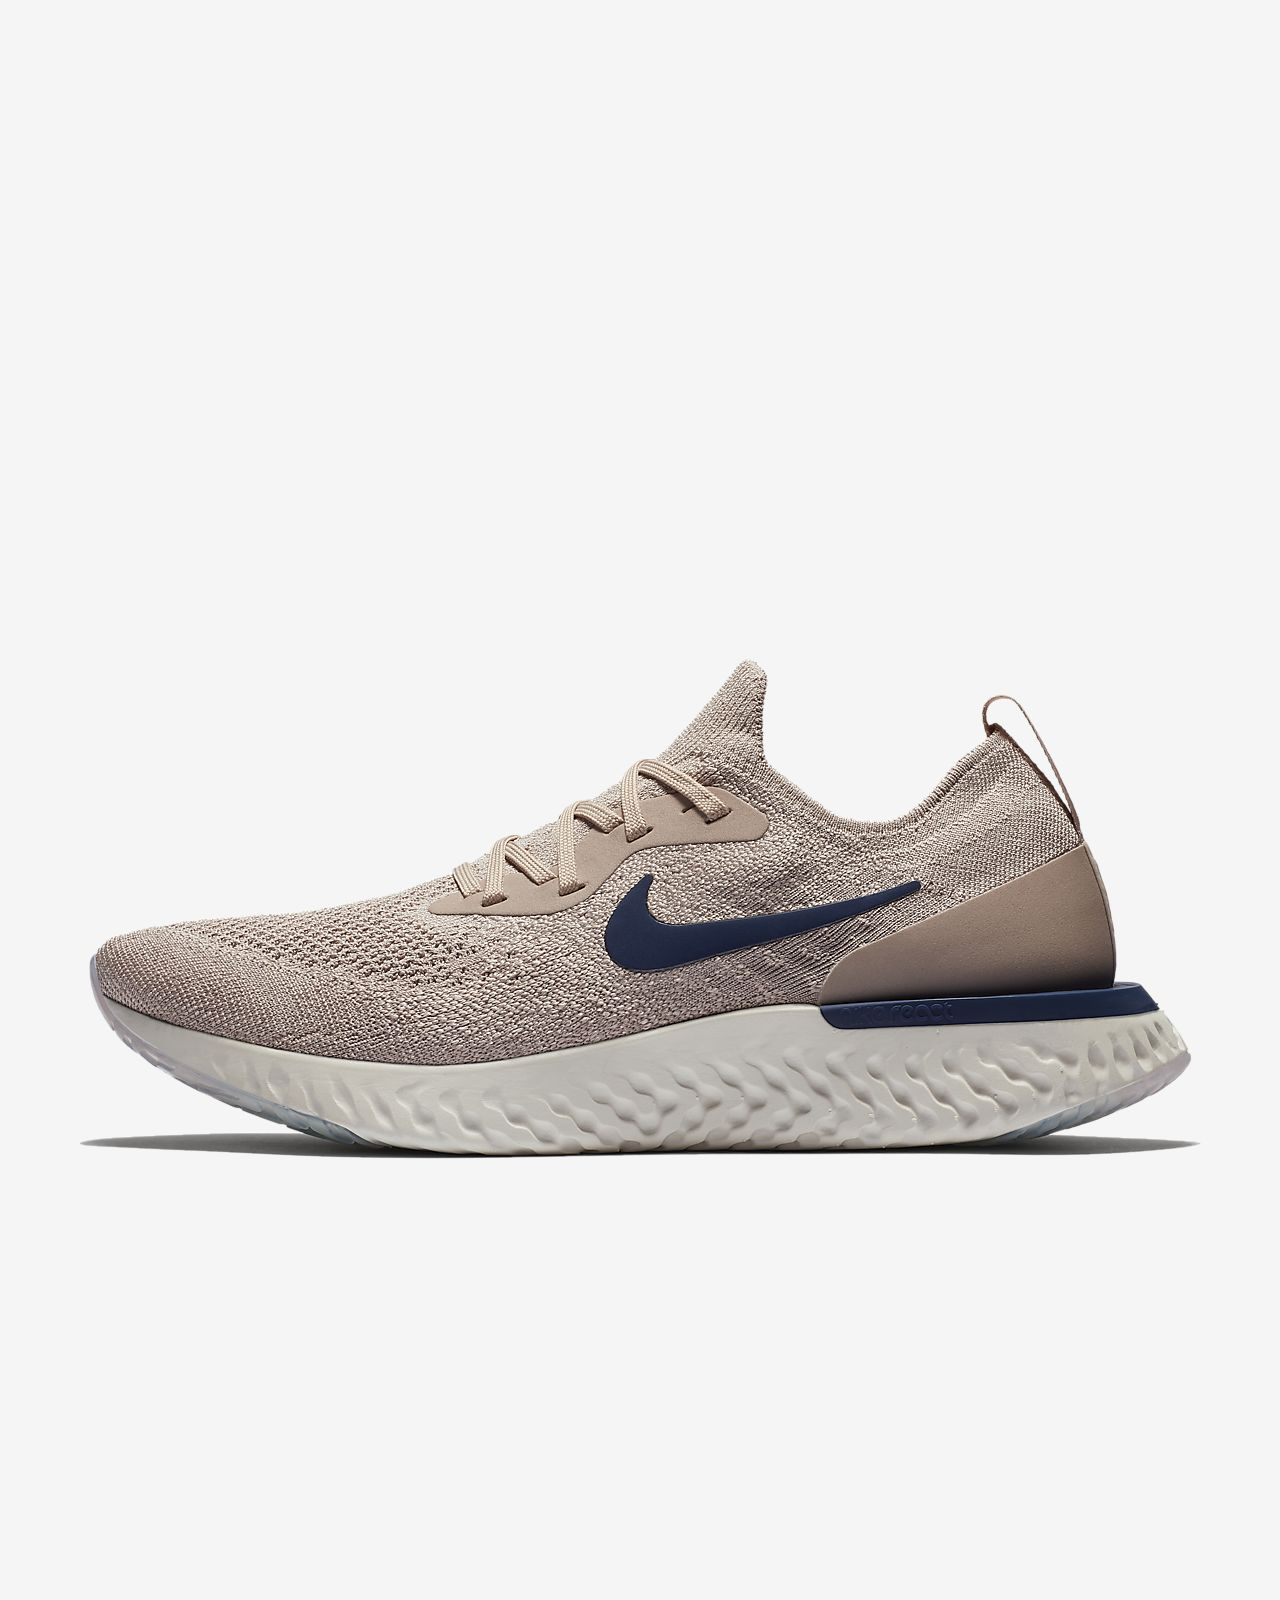 Nike Epic React Flyknit 1 Men's Running Shoe